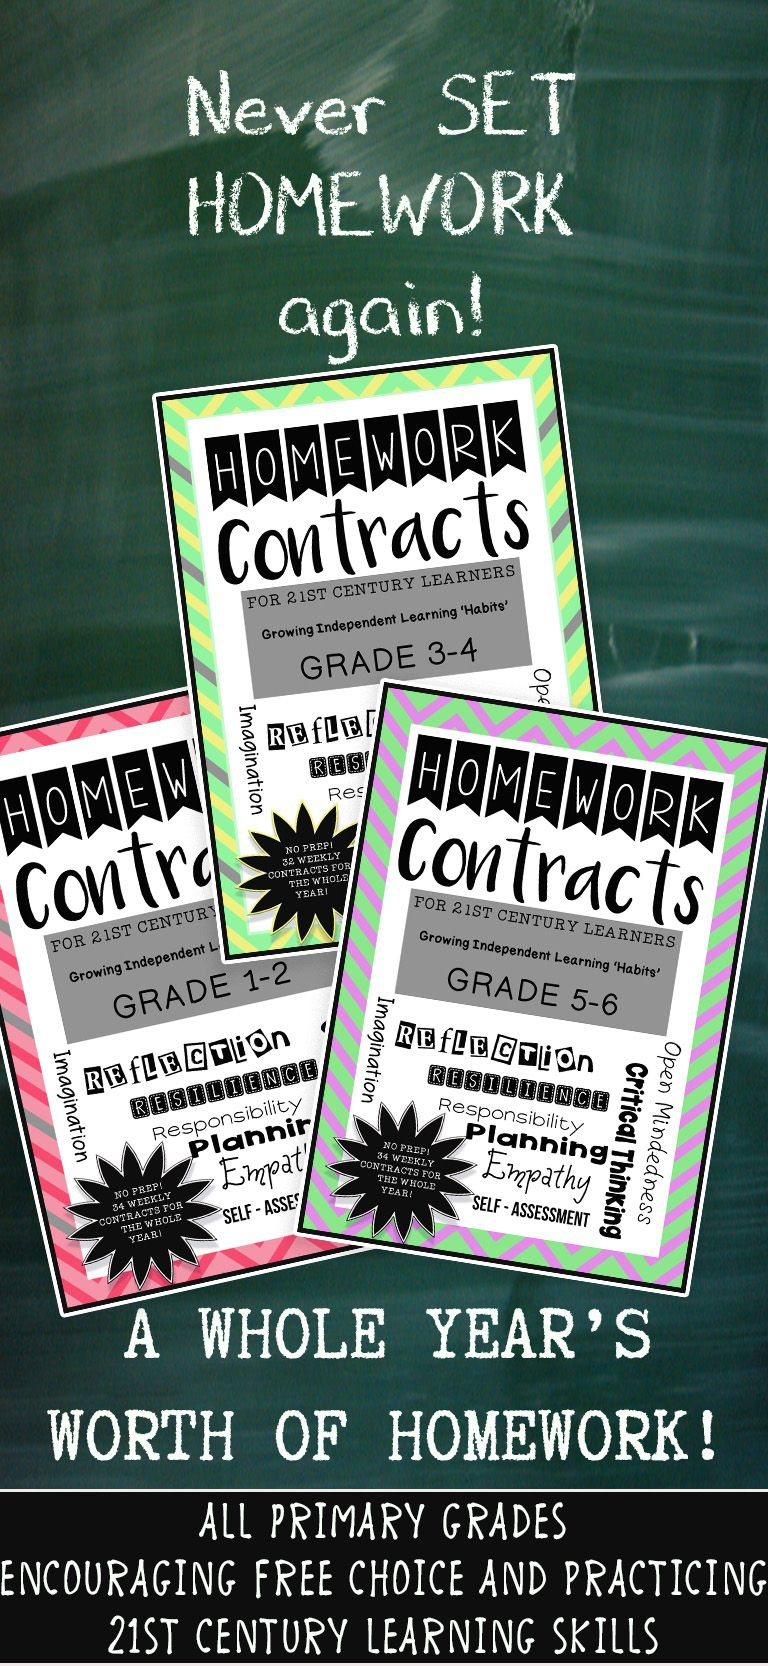 Don't let your 'teacher life' take over! Get a happy balance...These contracts are built for the differentiated classroom. Free choice, student centered activities that promote 21st Century Learning skills. And all while you're being kinder to yourself and winning time back!